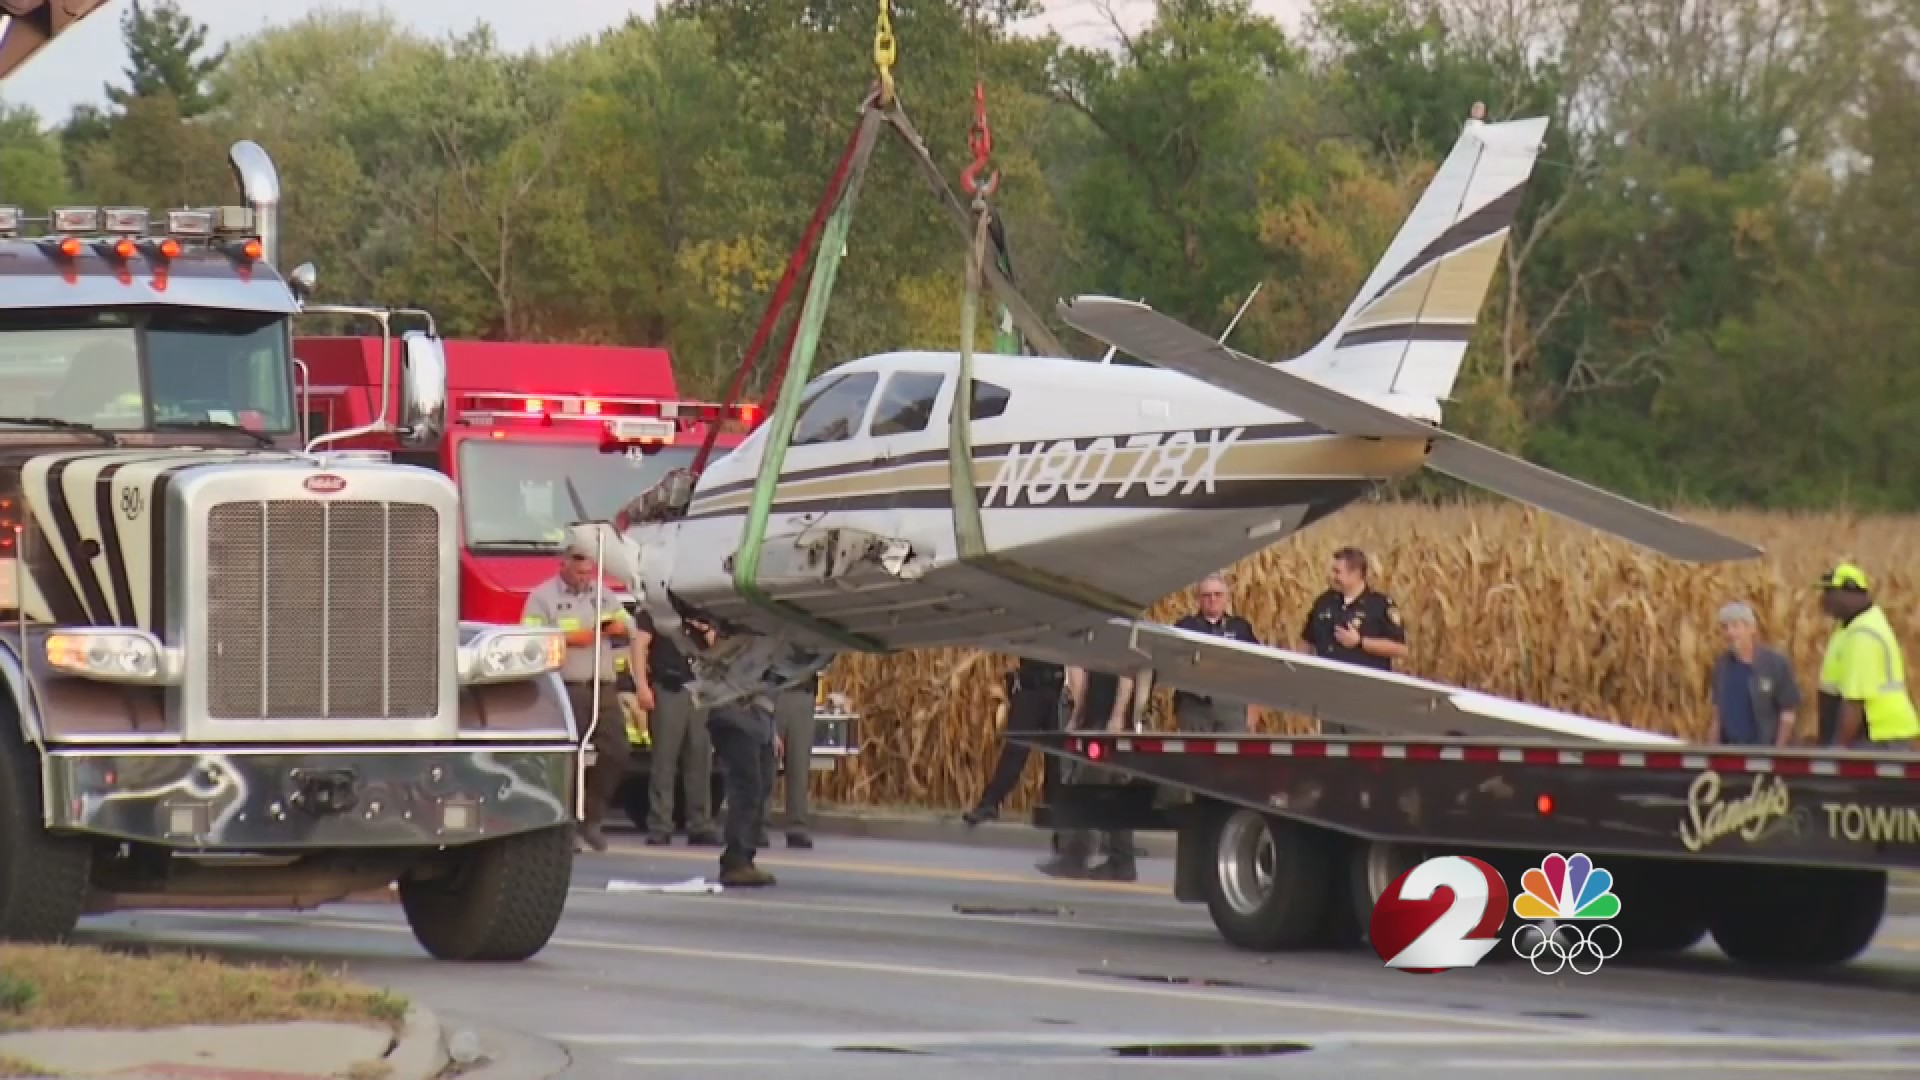 Witness talks about close call with plane in Washington Twp.